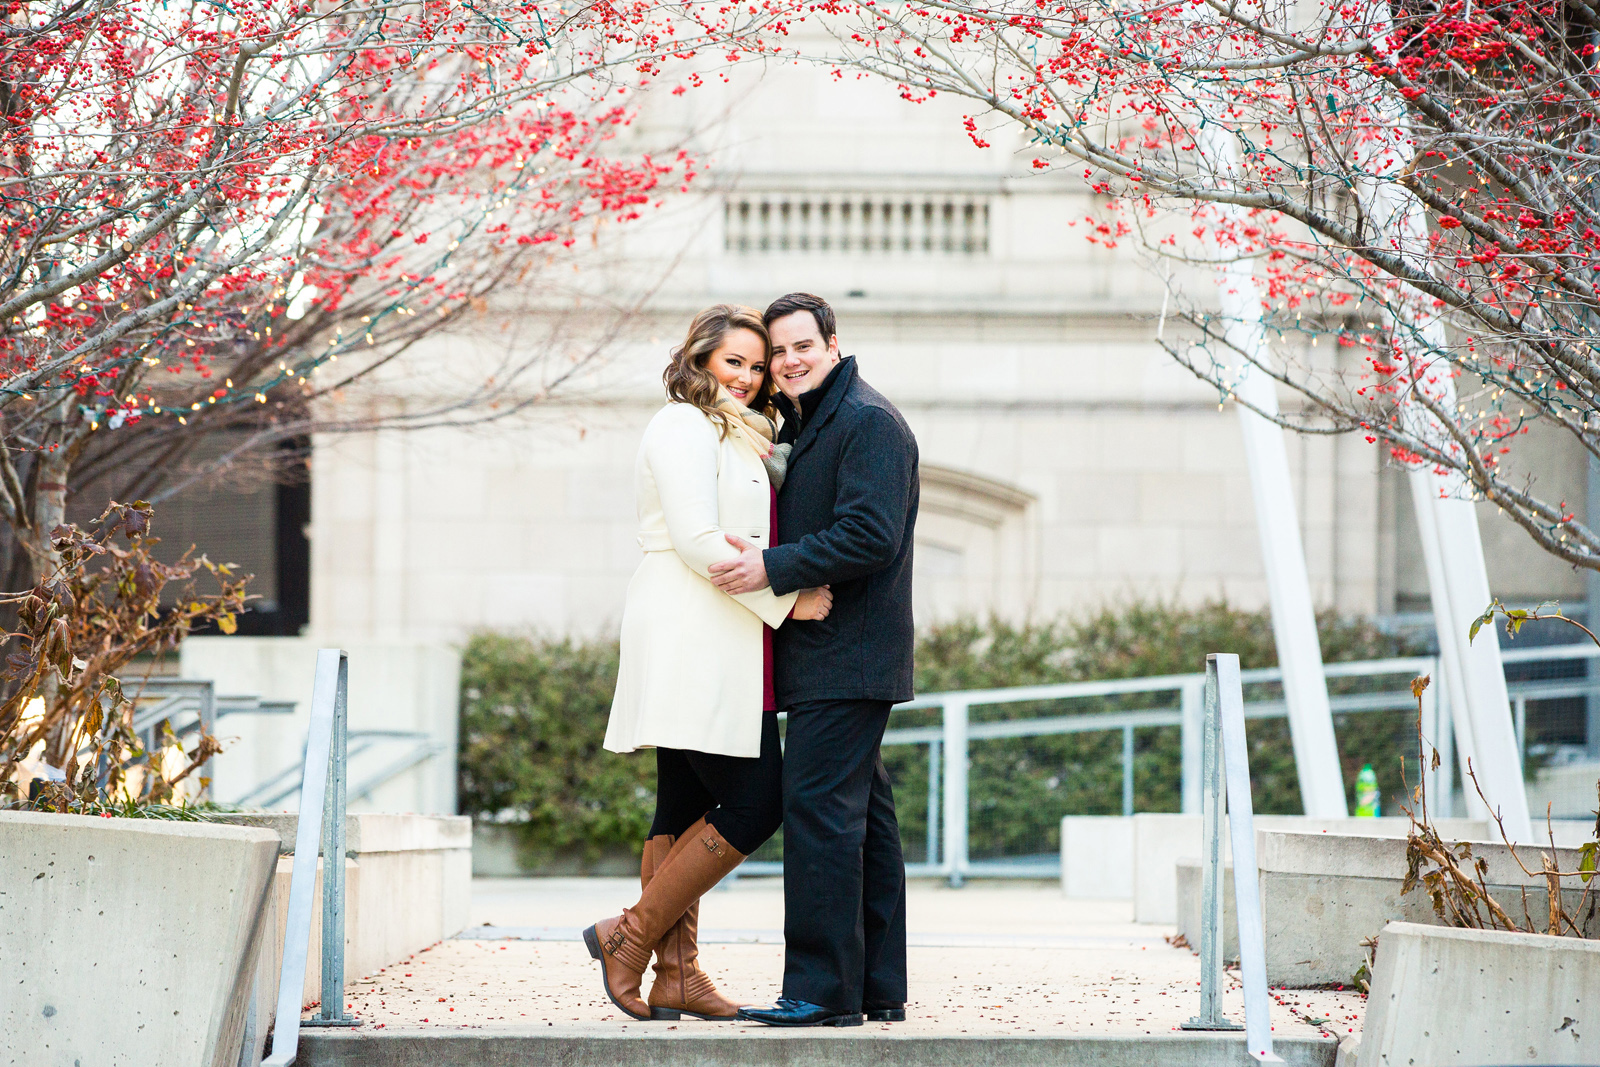 St_Louis_Old_Post_Office_Engagement_Session_20141229_162854.jpg